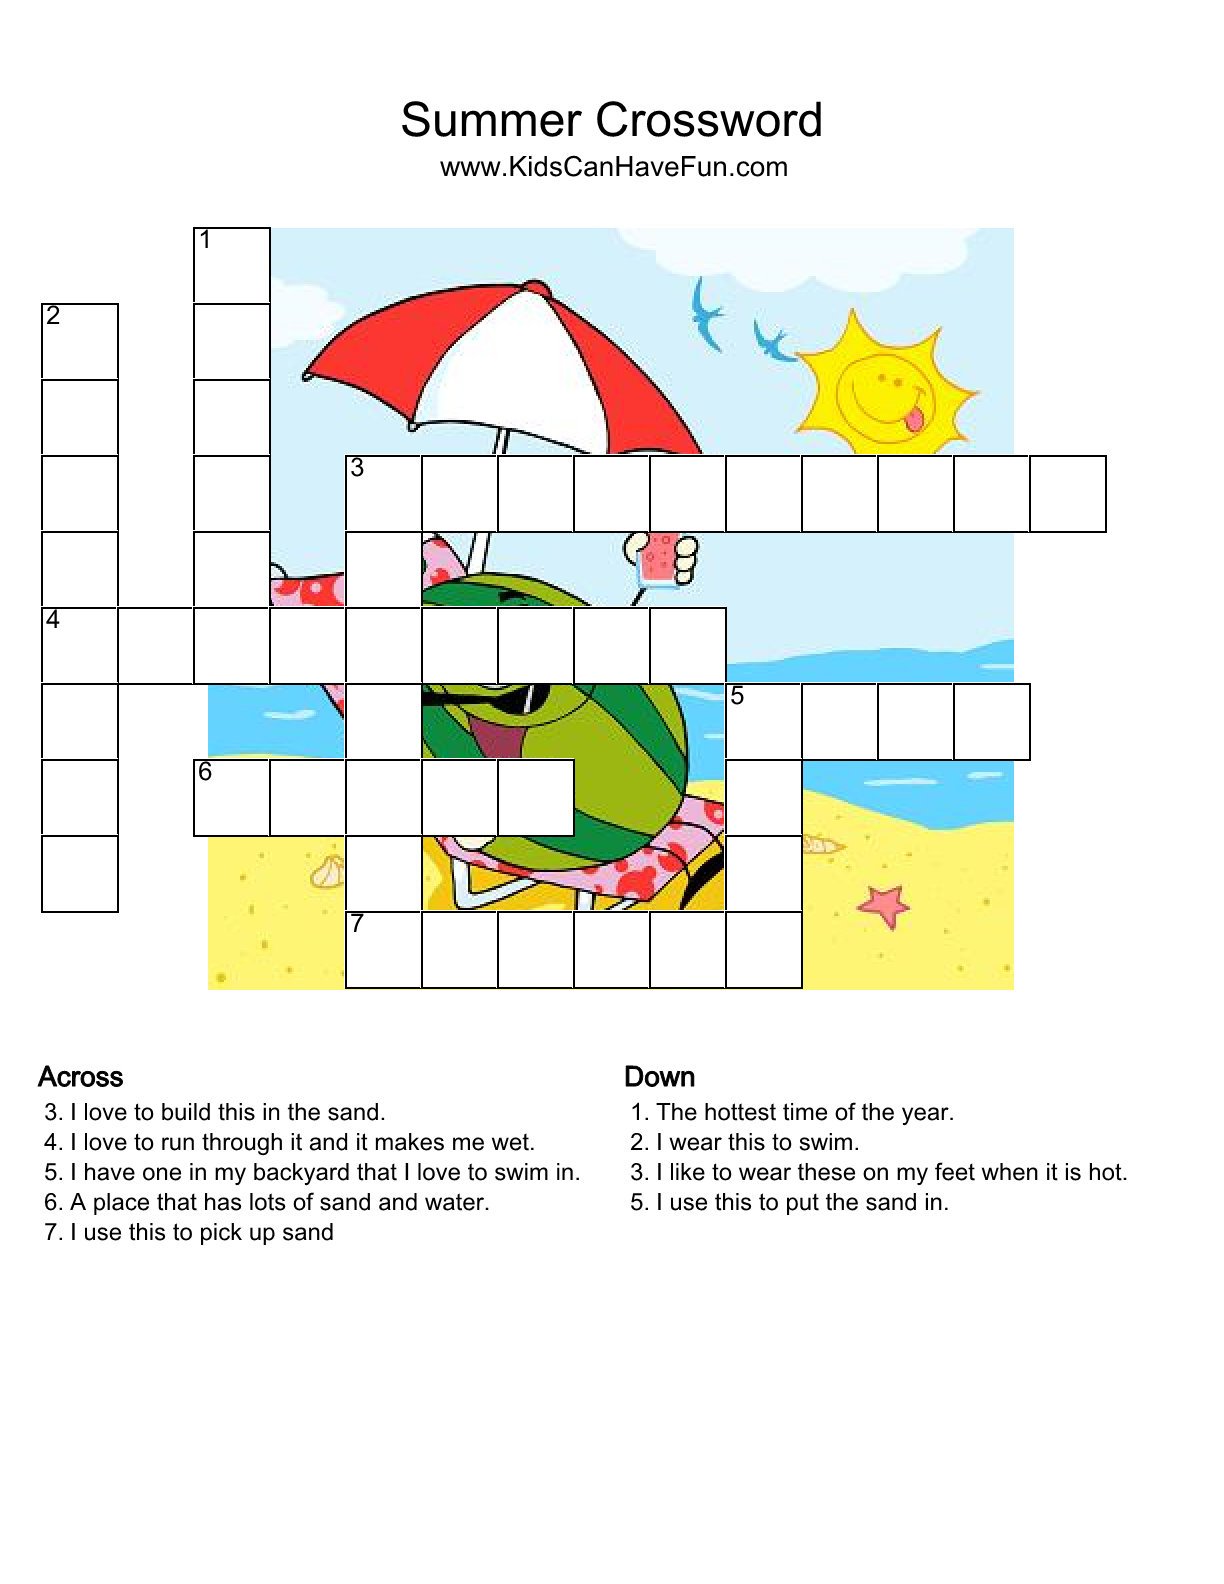 Pinsherry Disney On Education | Puzzles For Kids, Crossword - Printable Crossword Puzzles Summer Holidays